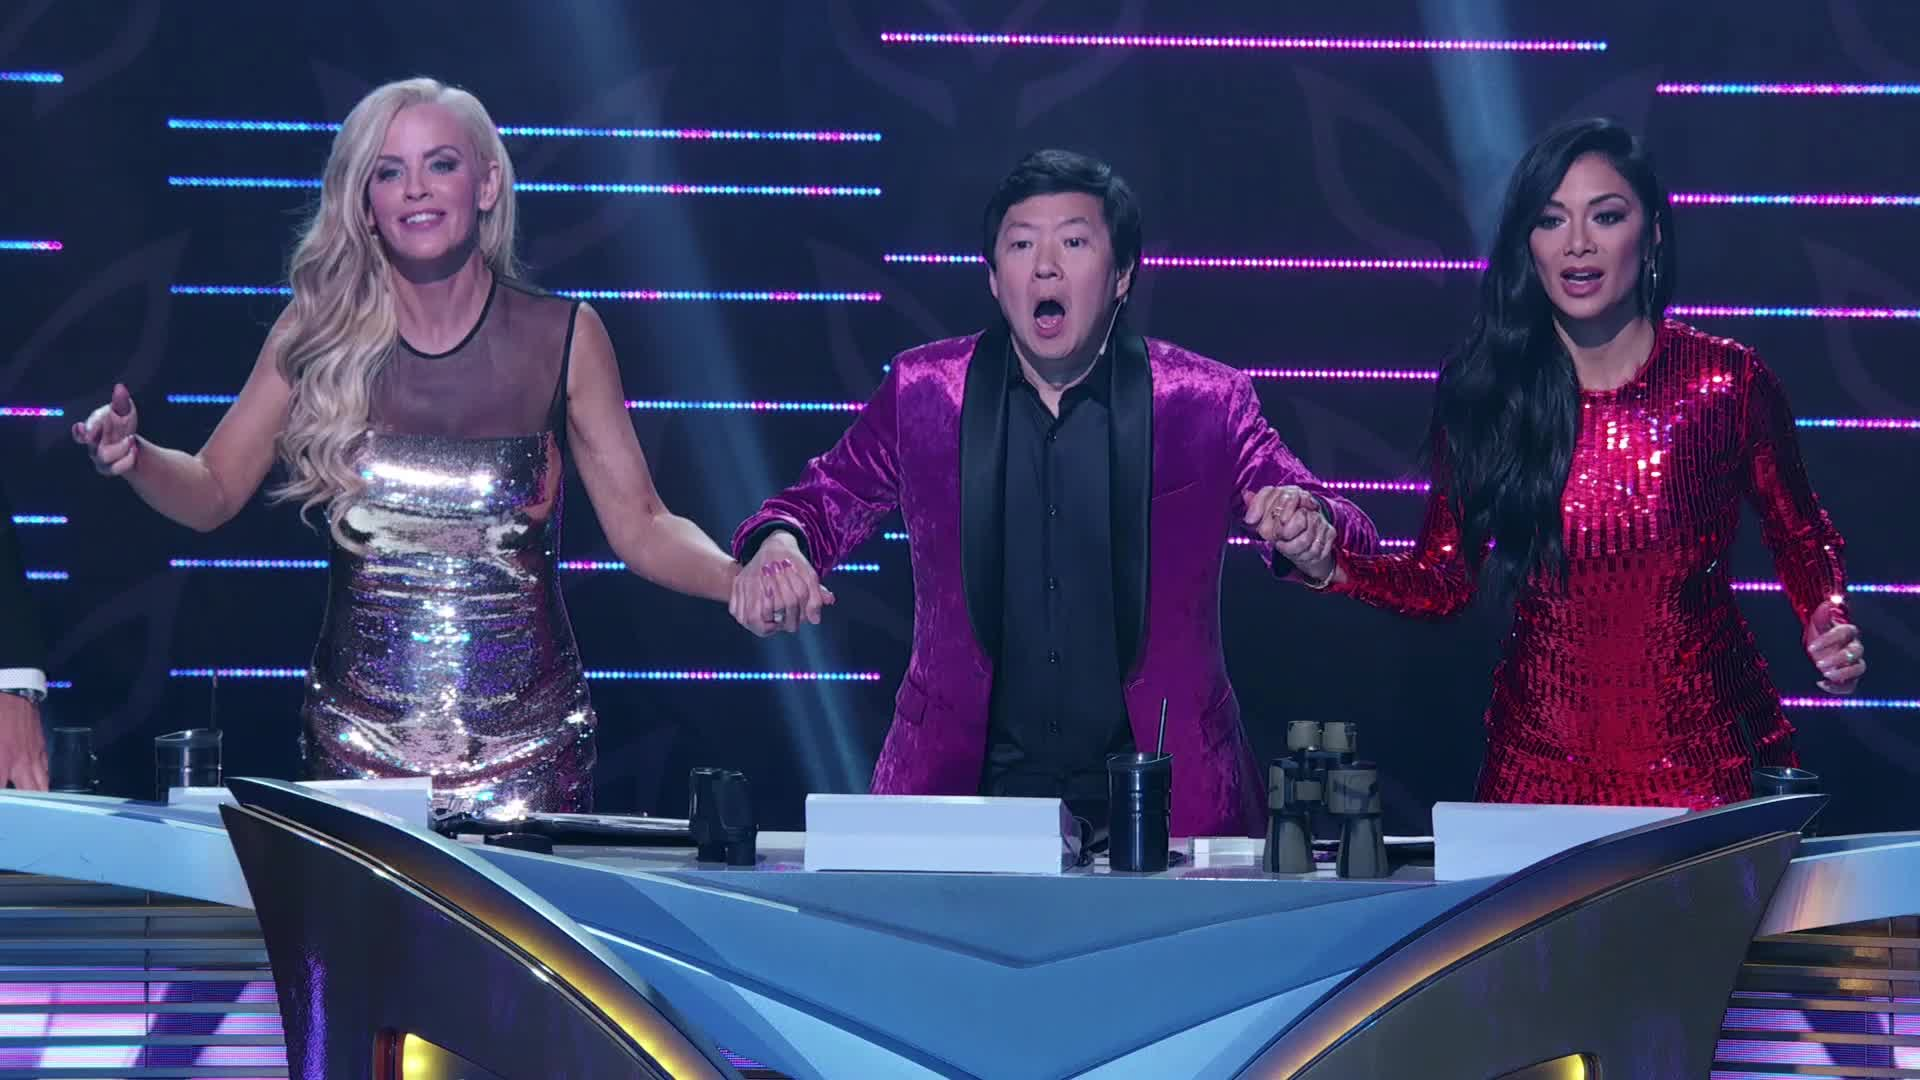 ahhh, crazy, excited, jenny mccarthy, ken jeong, masked singer, mind blown, nicole scherzinger, omg, shocked, surprise, the masked singer, the masked singer on fox, wow, Jenny, Ken, and Nicole Screaming GIFs